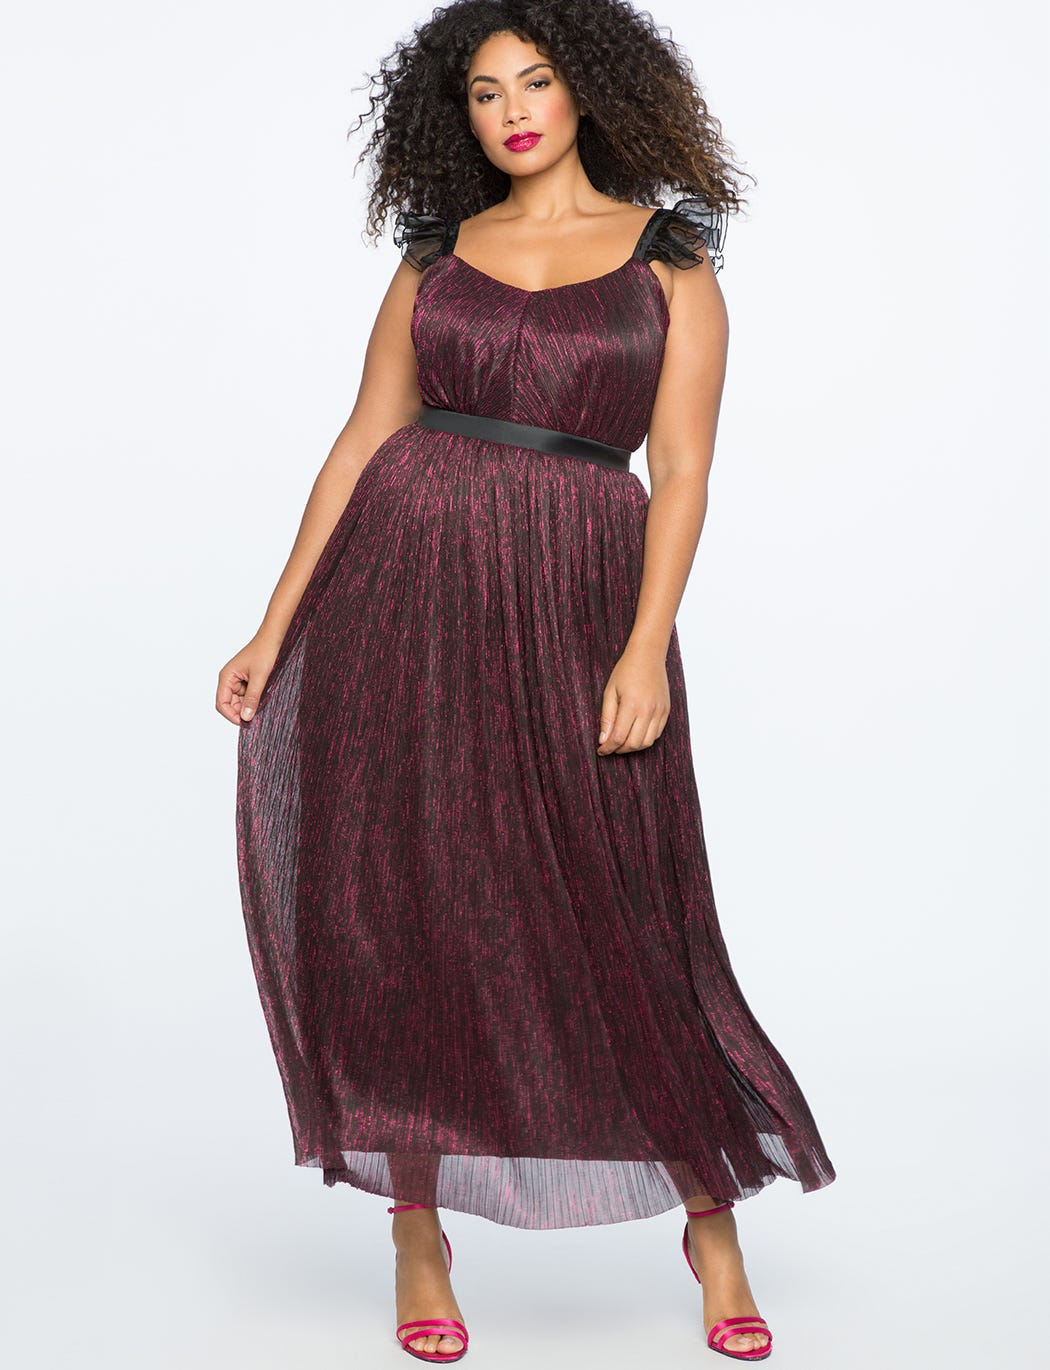 Plus Size Prom Dresses - High Low Styles